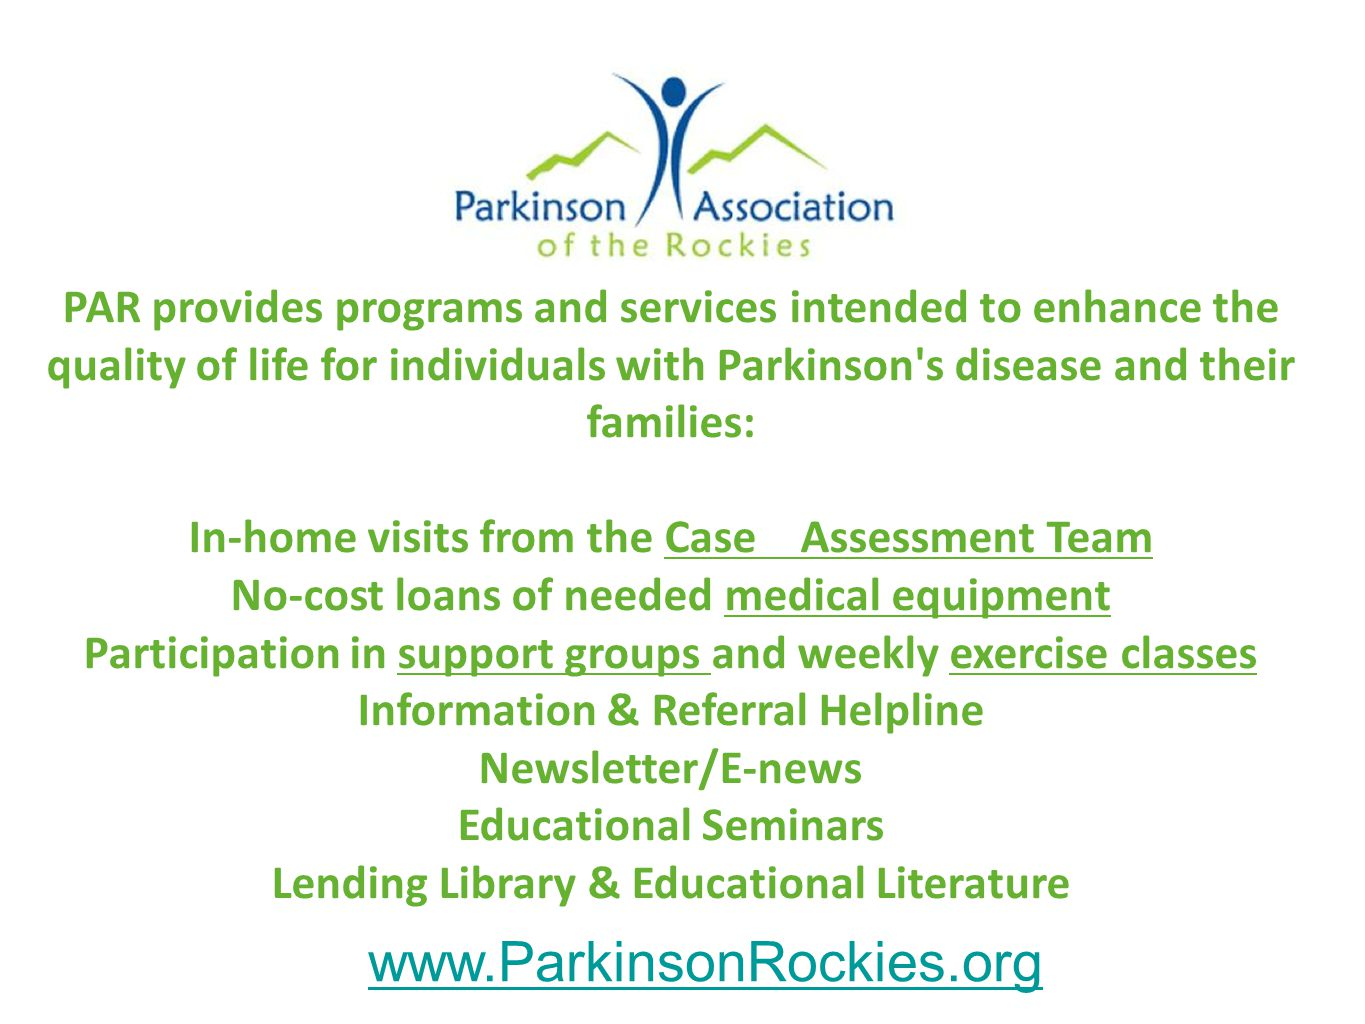 PAR provides programs and services intended to enhance the quality of life for individuals with Parkinson s disease and their families: